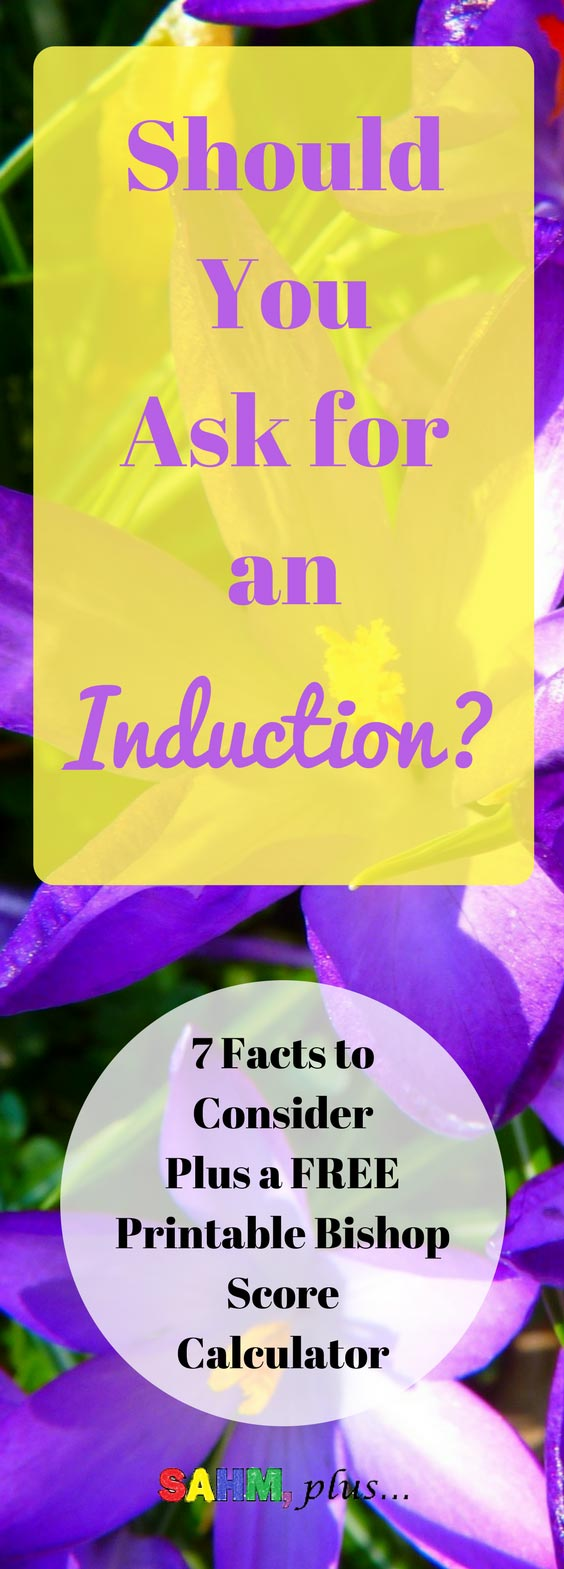 Should you ask for an induction if baby is late or you're getting impatient? 7 facts to know FIRST. Plus, a free printable bishop score calculator